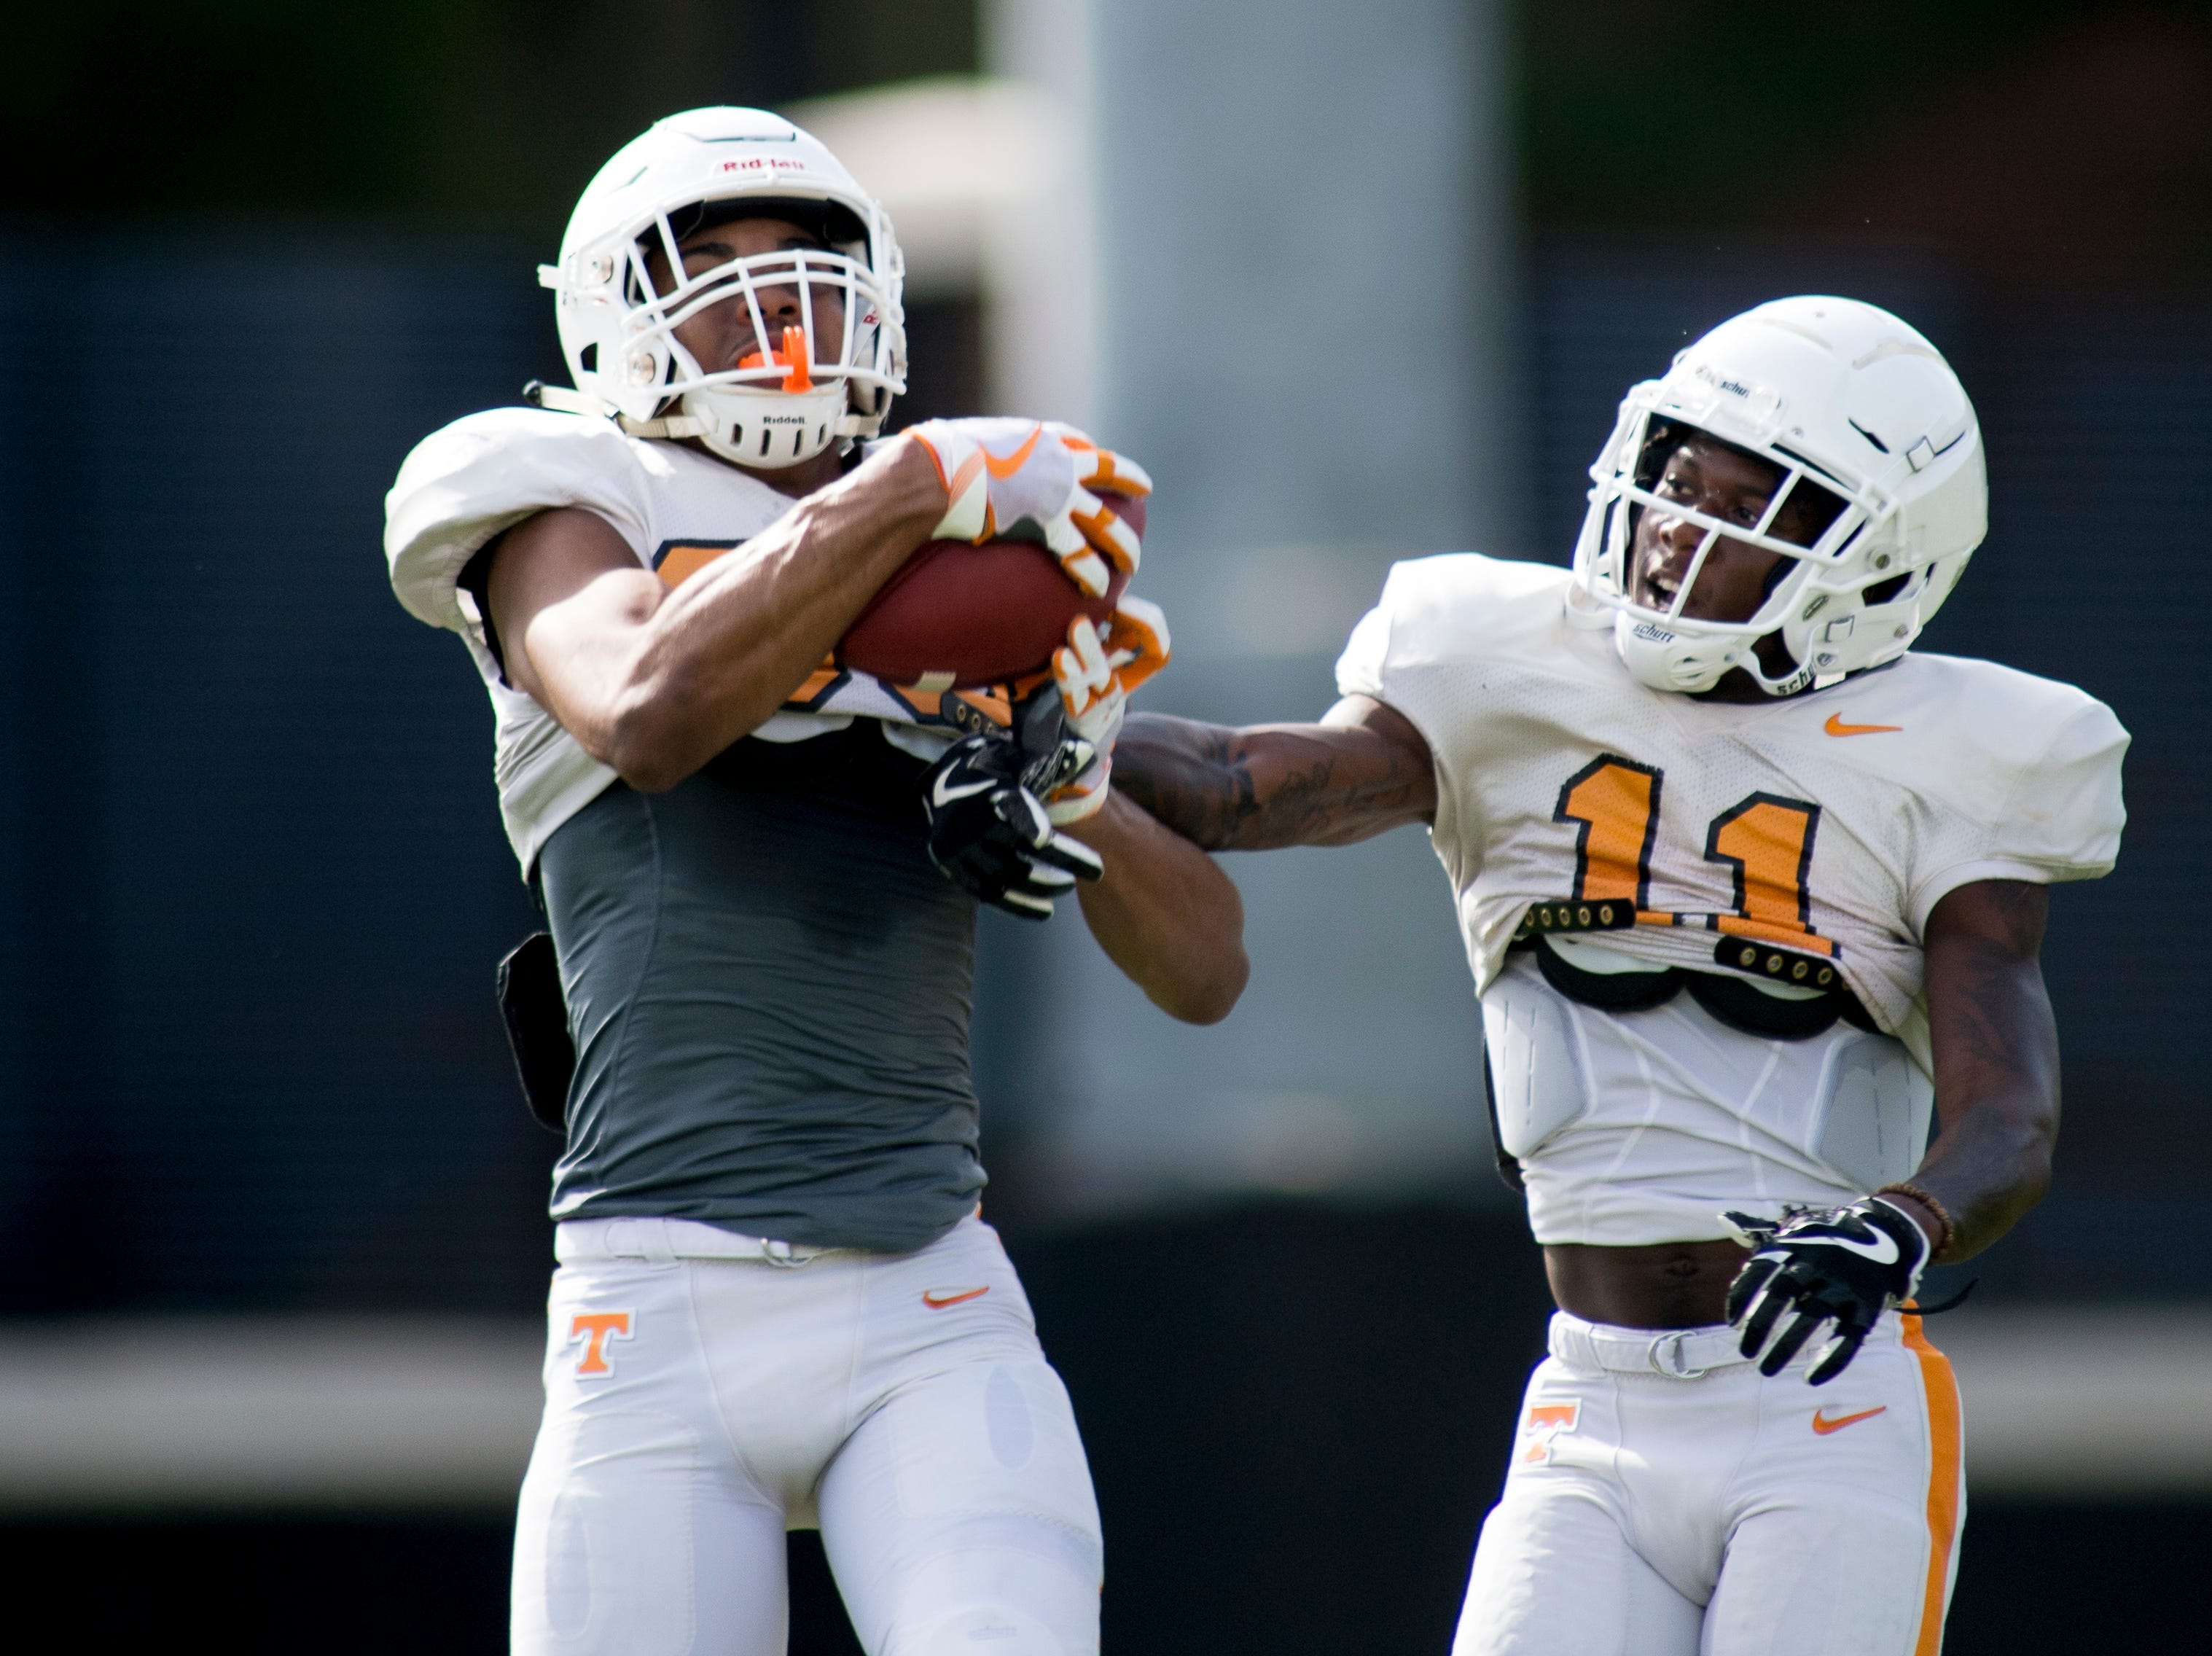 Tennessee's Tennessee's Cedric Tillman (85) and Jordan Murphy (11) catch a pass during Tennessee spring practice at Haslam Field in Knoxville, Tennessee on Thursday, April 11, 2019.